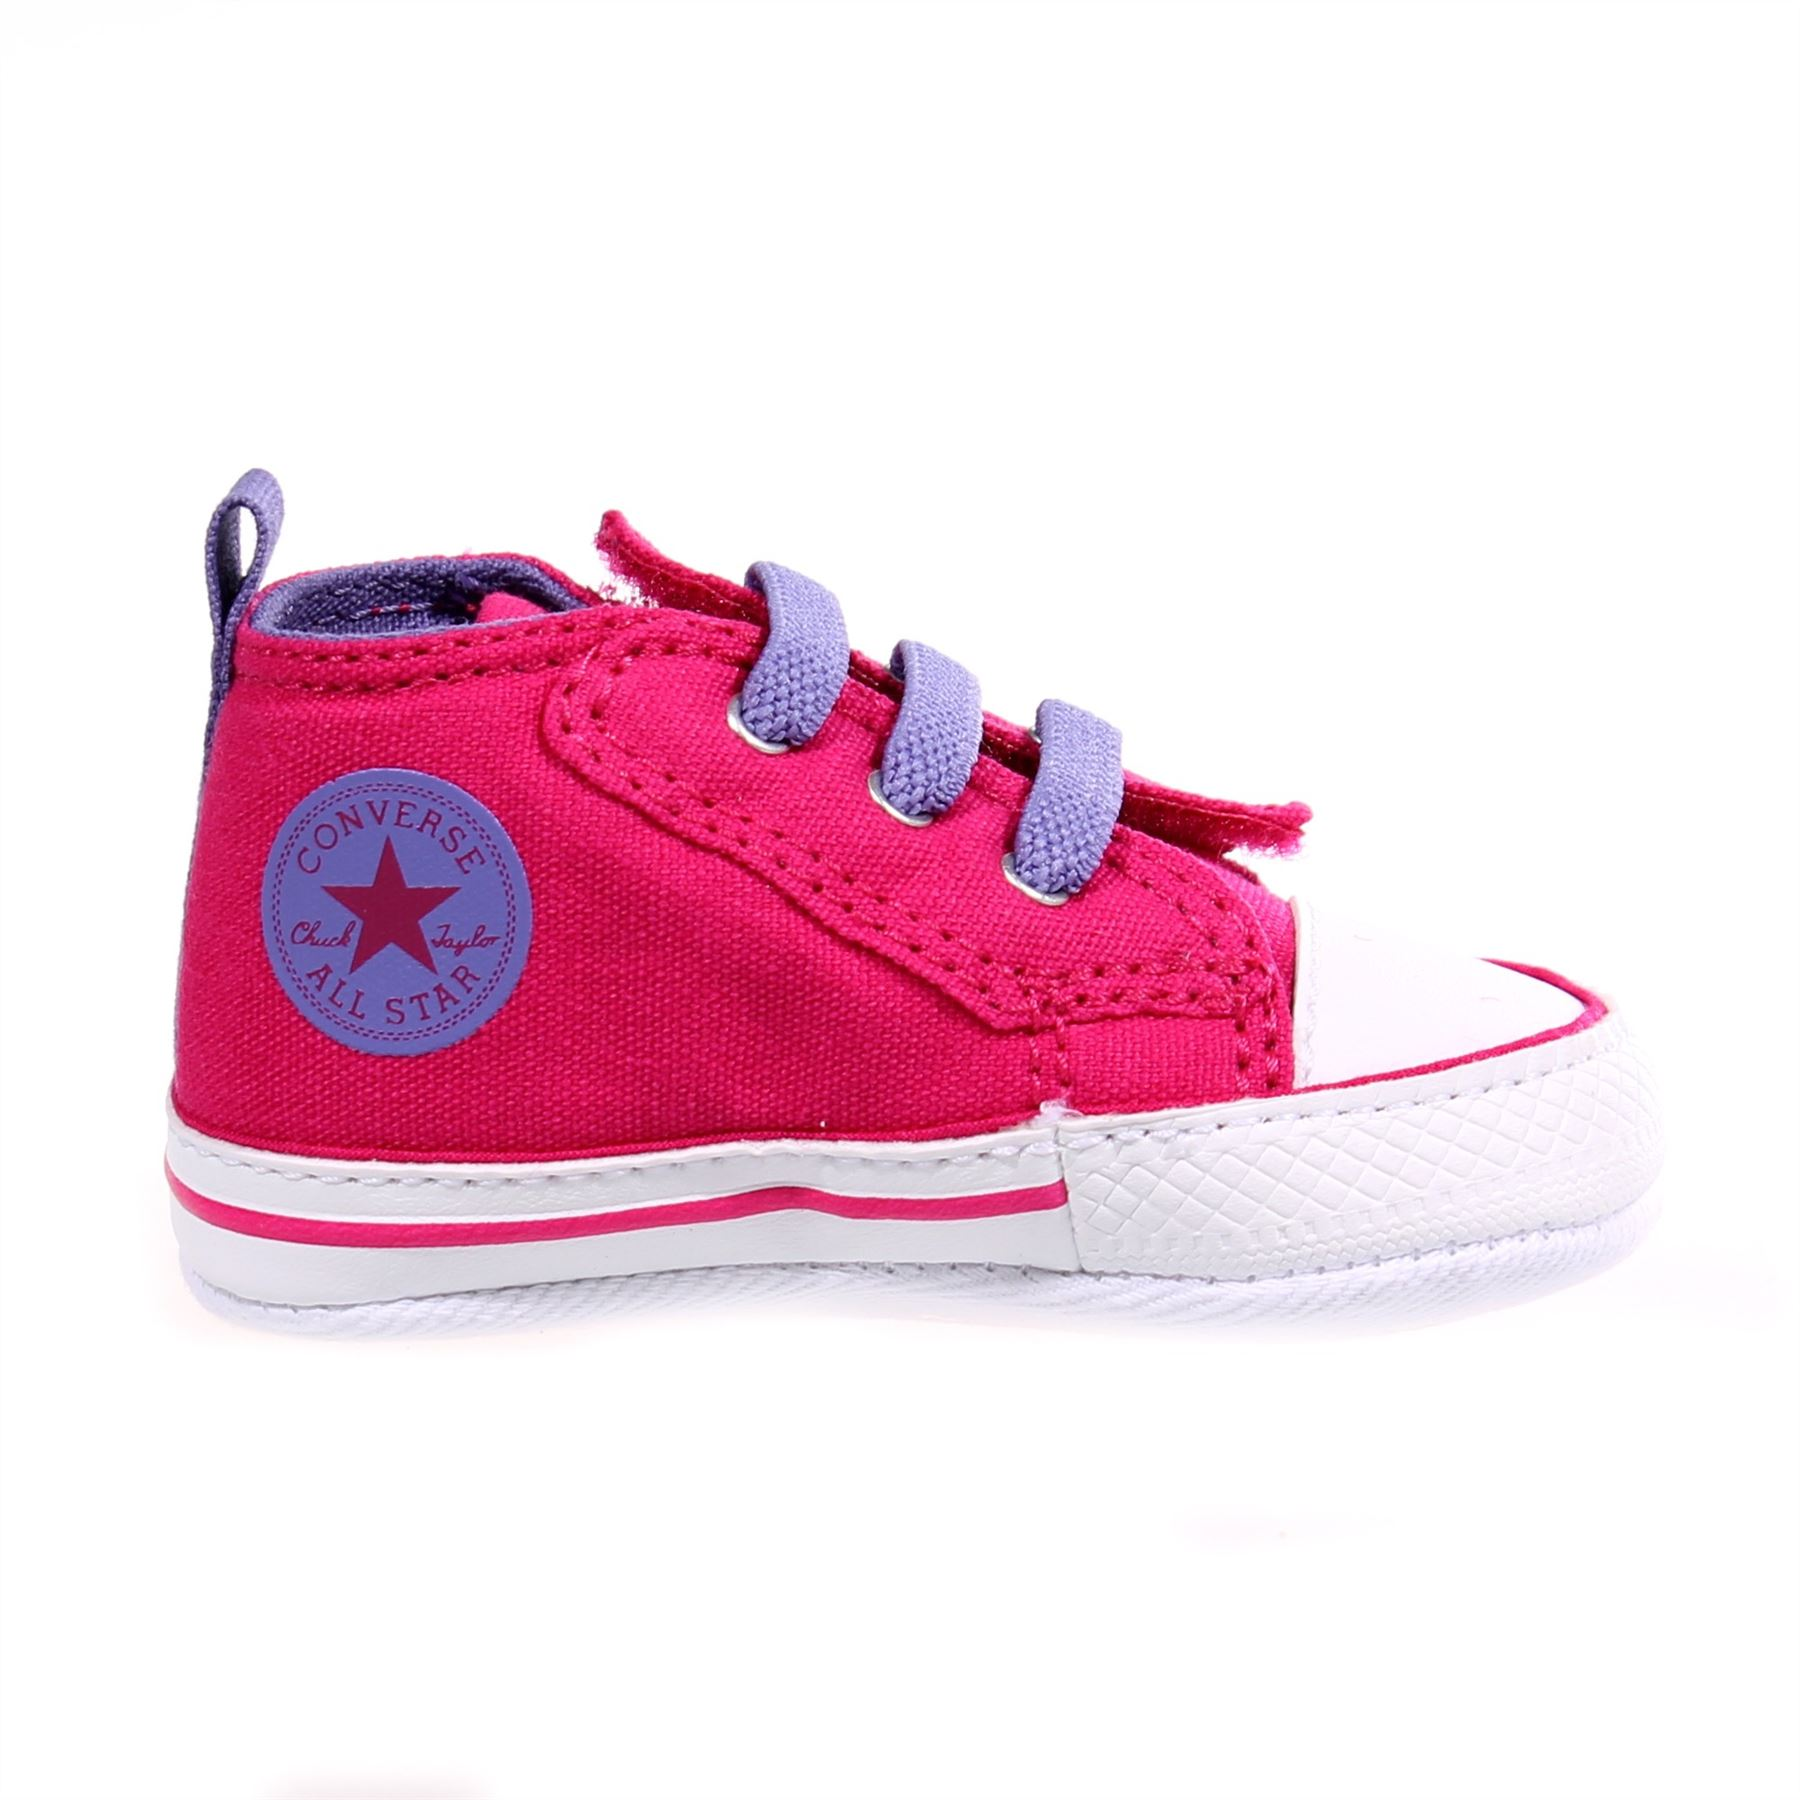 Converse CT EASY SCIVOLO Co ROSA CULLA 845251c UK 1 4